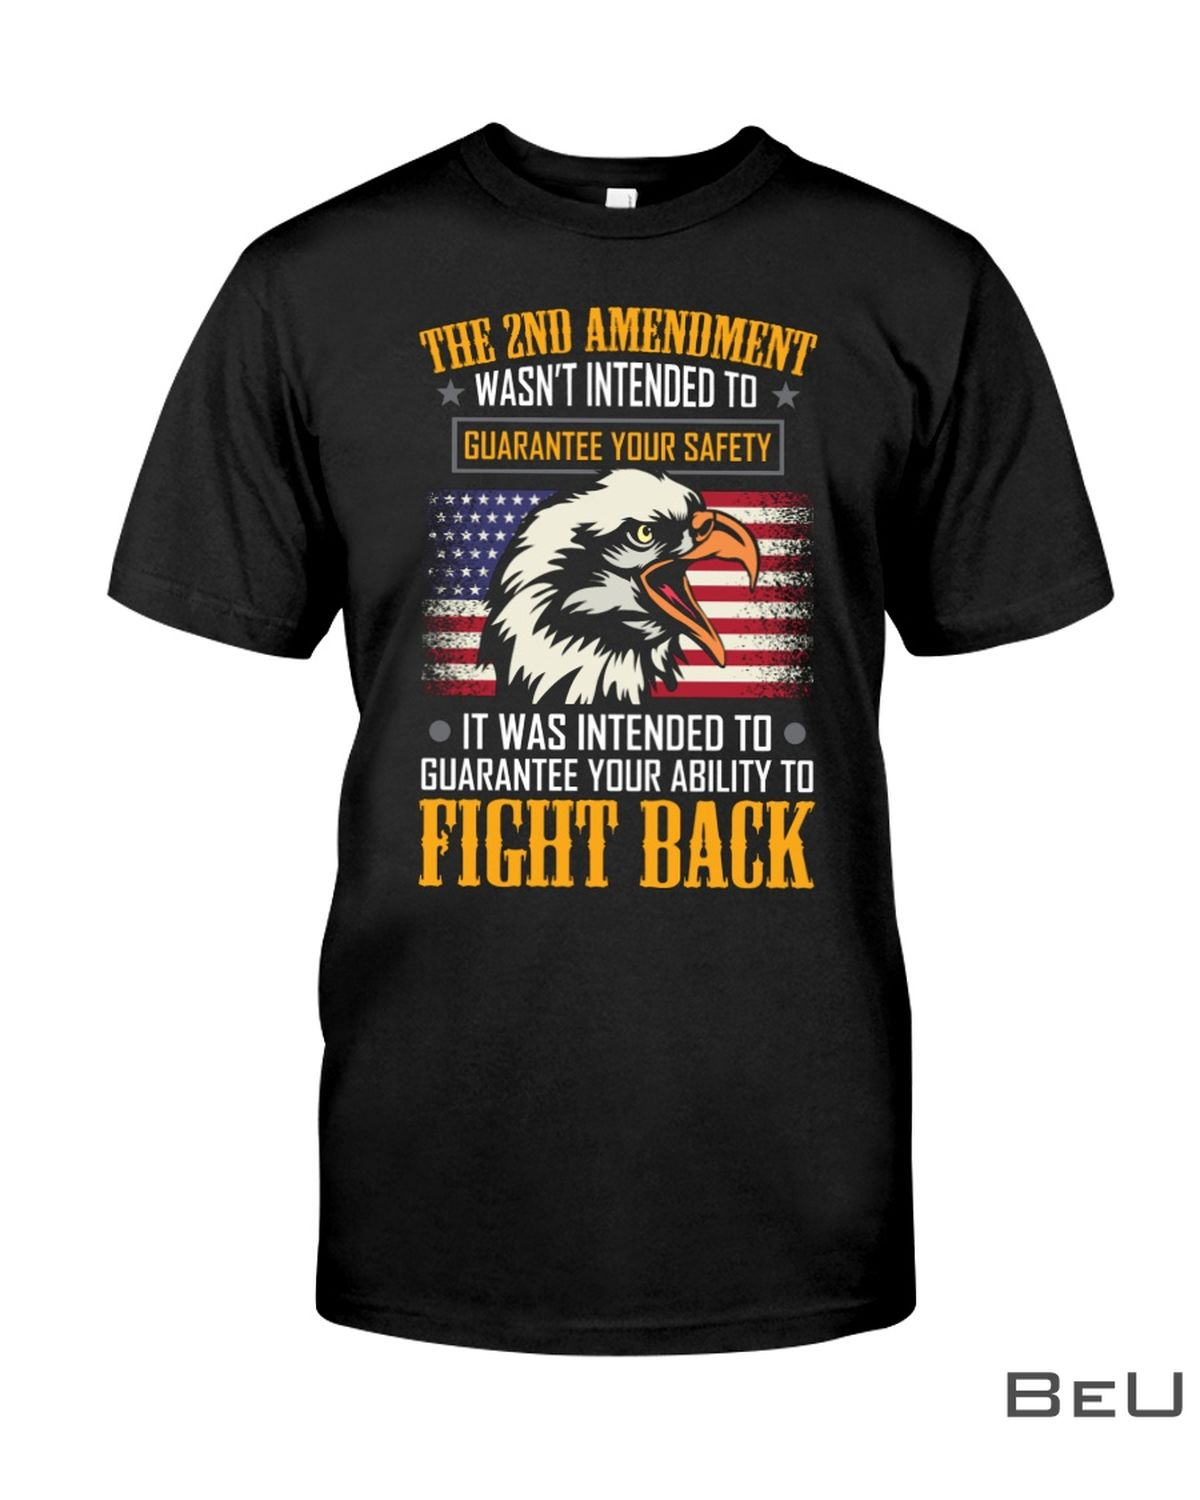 Fight Back The 2nd Amendment Wasn't Intended To Guarantee Your Safety Shirt, hoodie